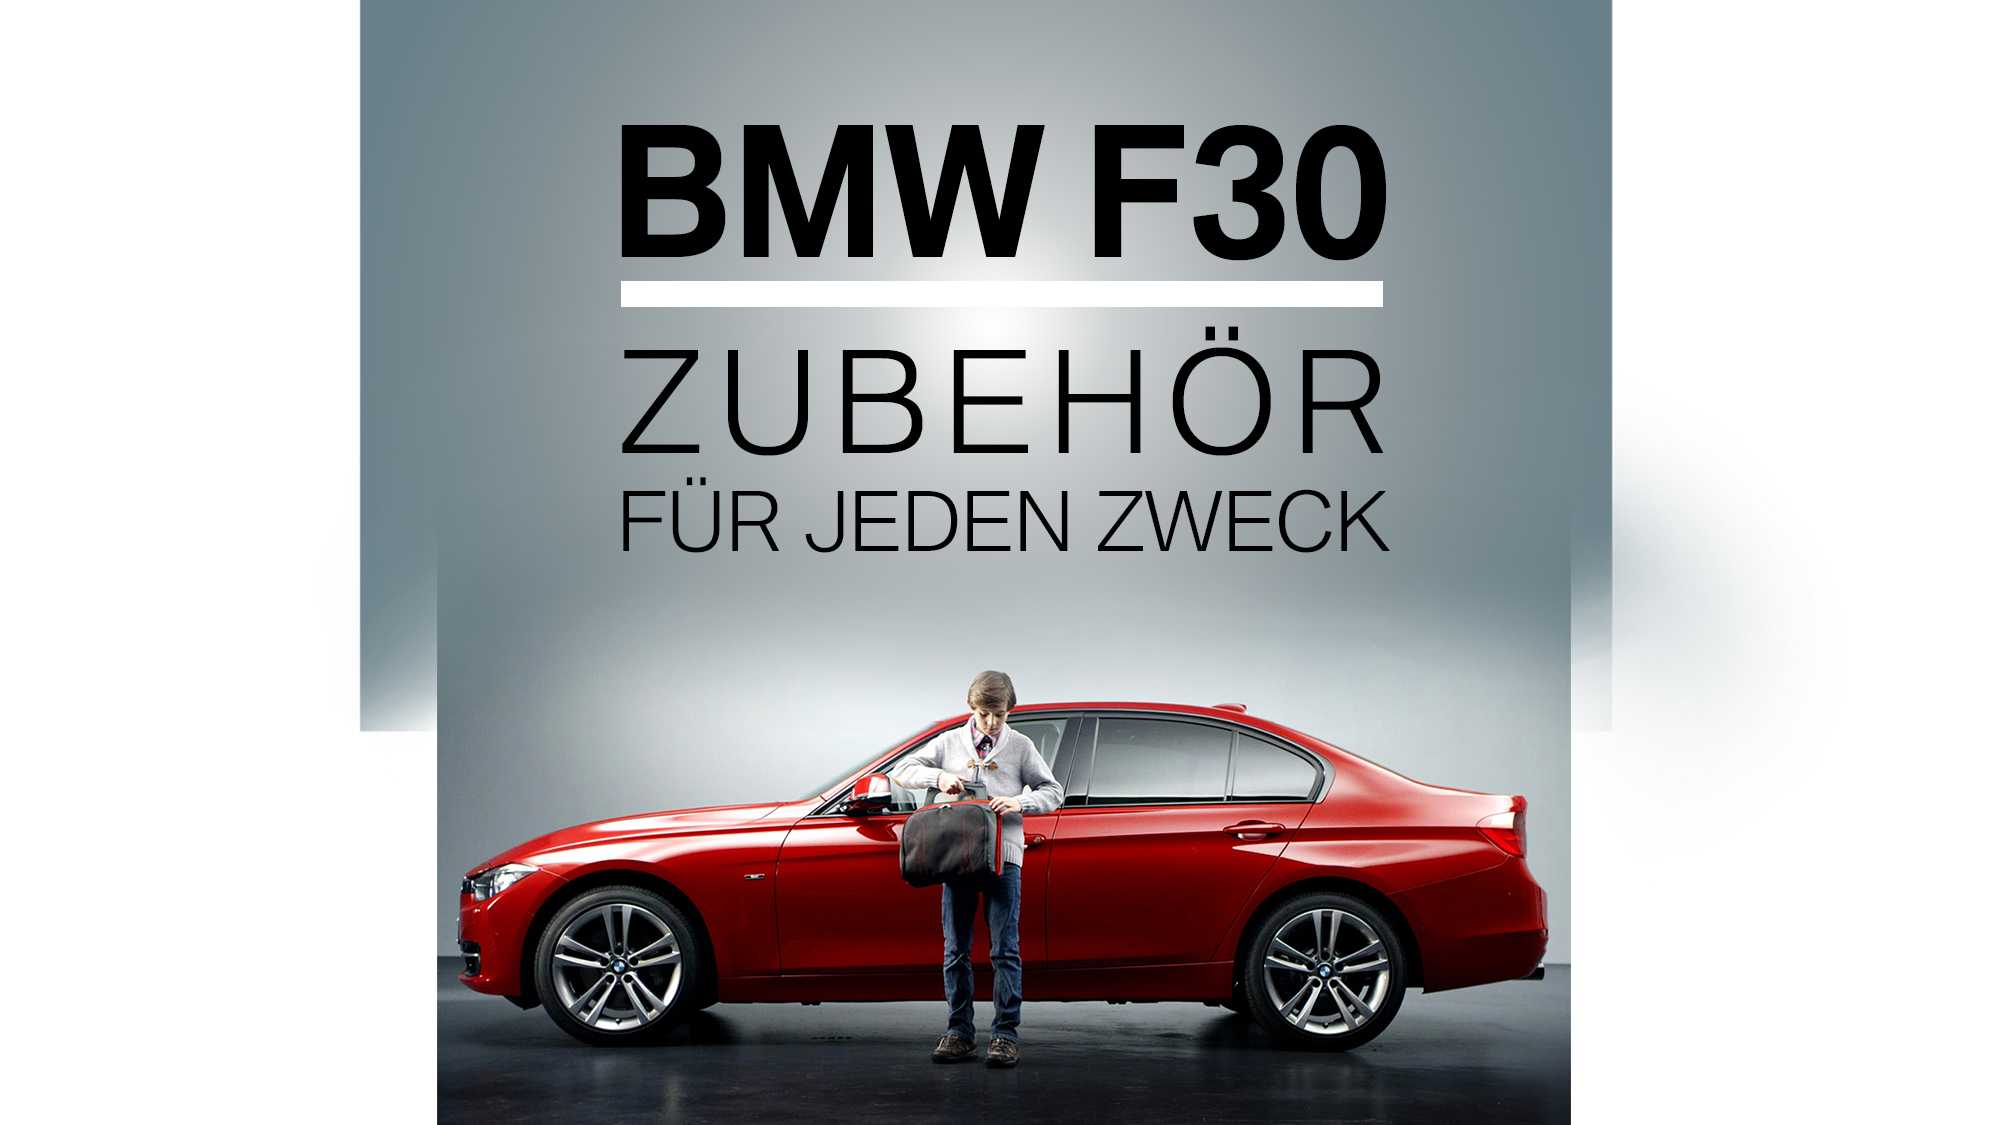 bmw f30 zubeh r panda pictures gmbh filmproduktion. Black Bedroom Furniture Sets. Home Design Ideas